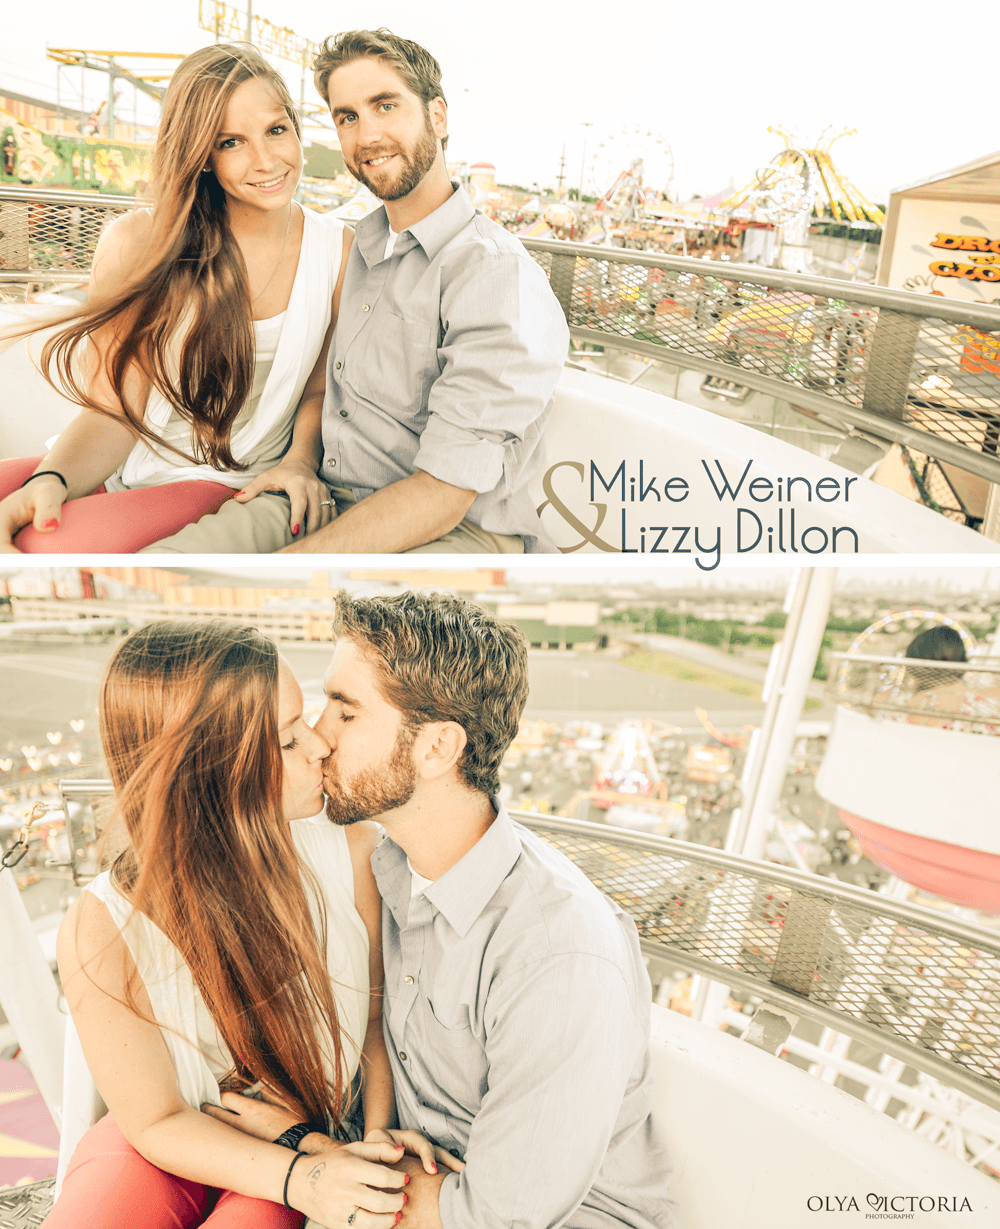 Engagement on a Farris Wheel